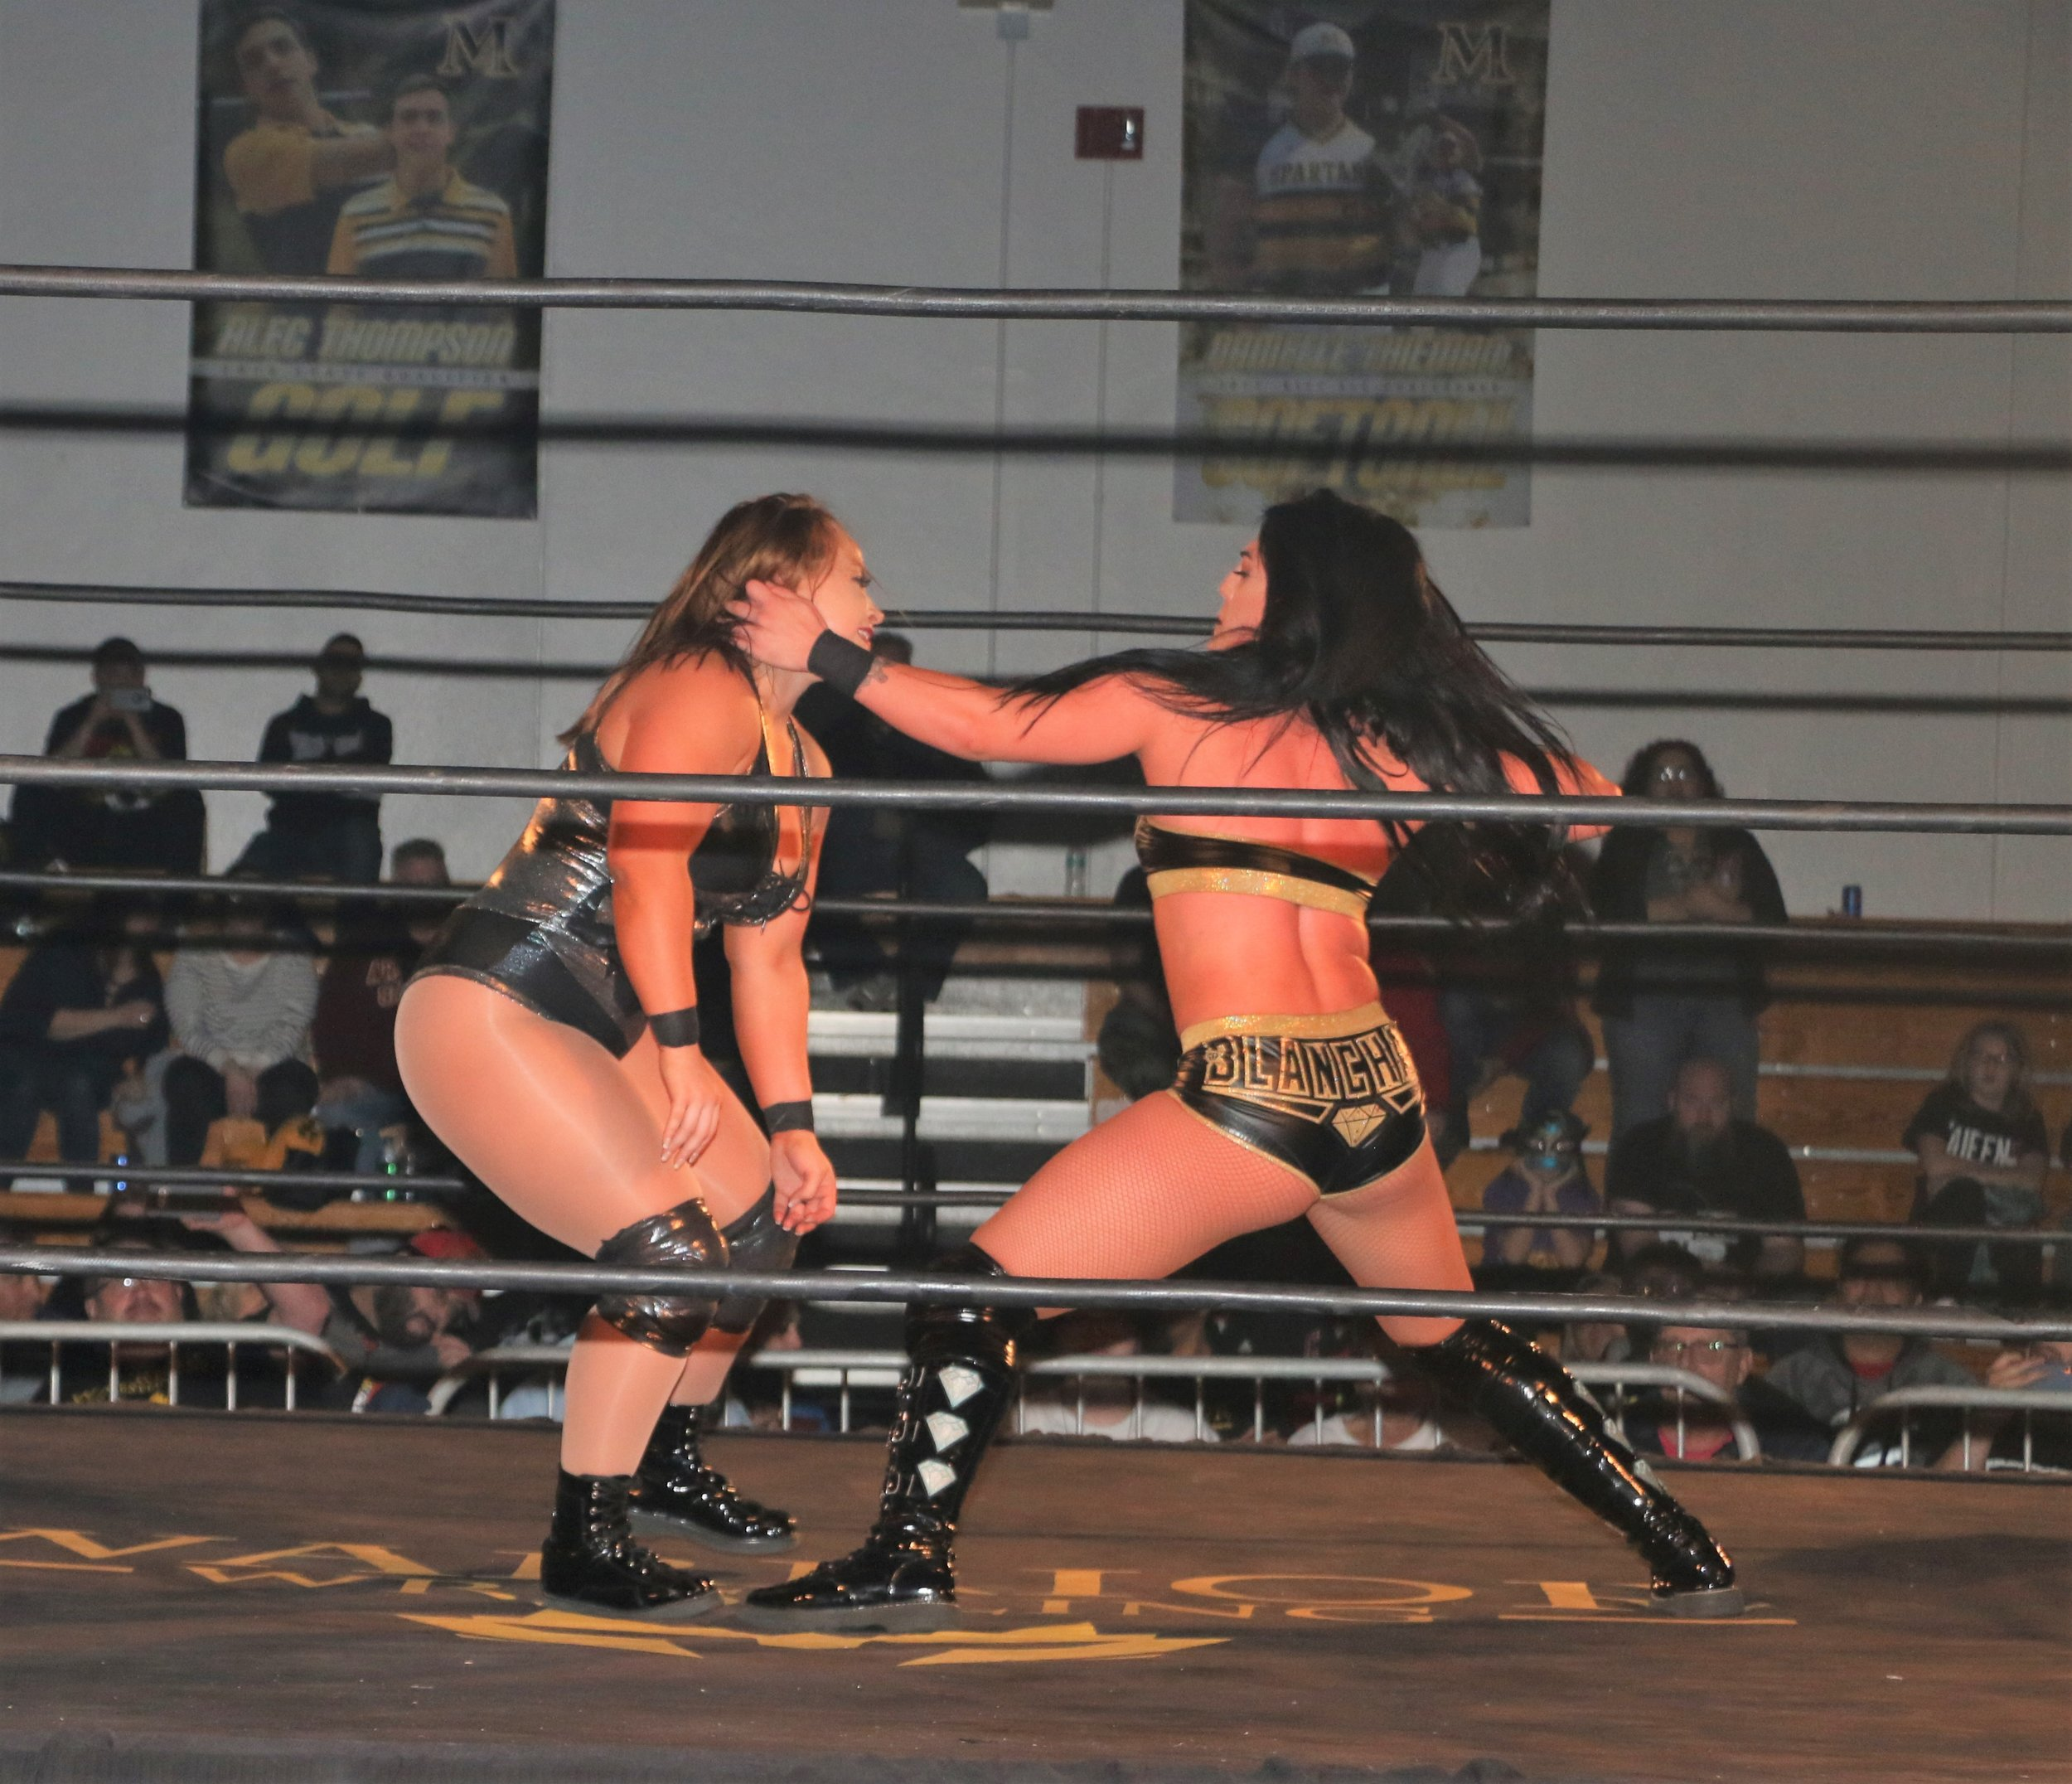 Tessa Blanchard, right, takes a swing at Jordynne Grace during the Warrior Wrestling Women's Championship match.